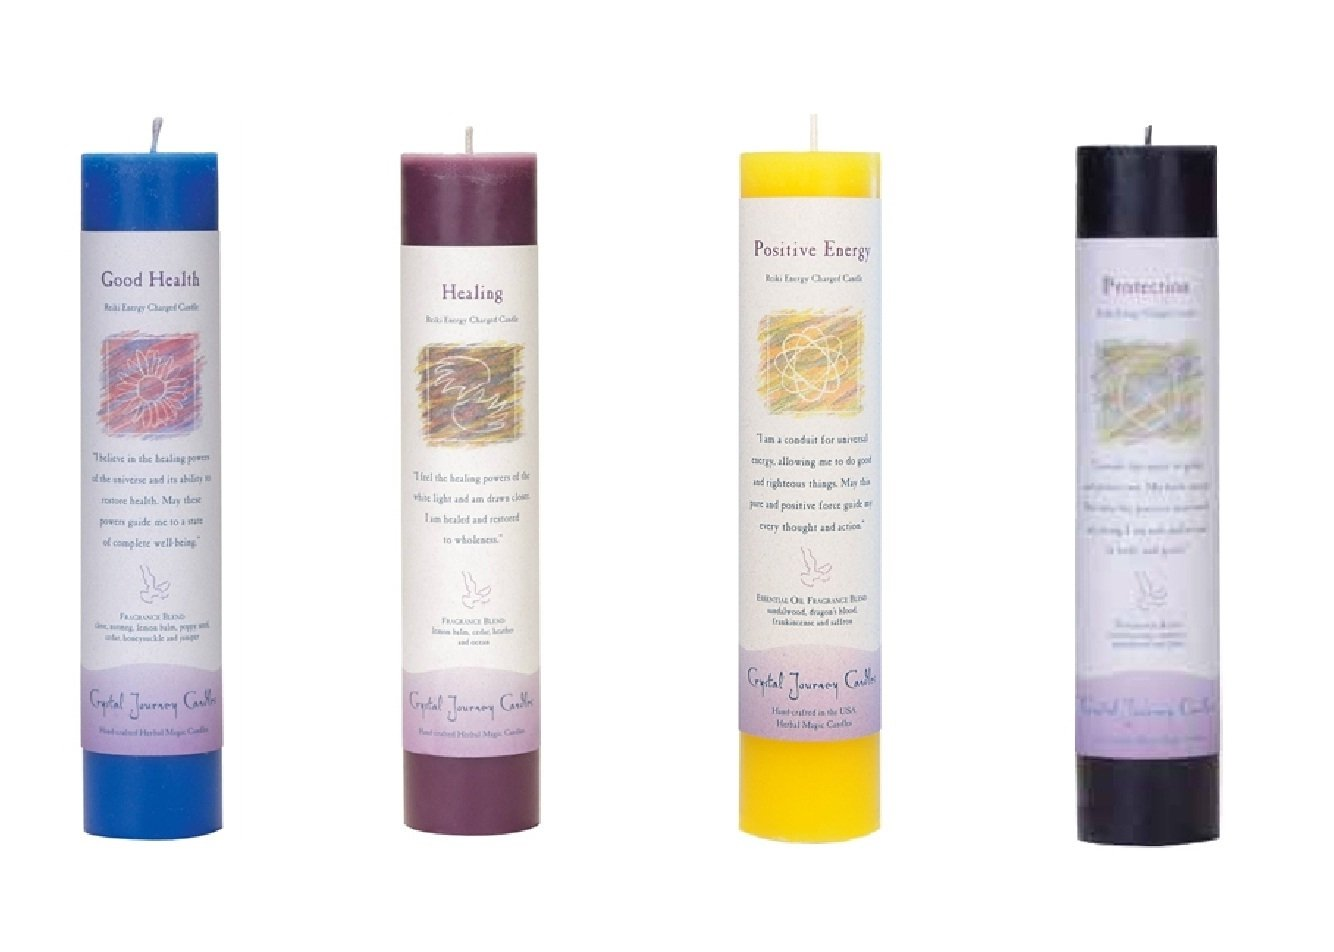 Crystal Journey Reiki Charged Herbal Magic Pillar Candle with Inspirational Labels - Bundle of 4 (Good Health, Healing, Positive Energy, Protection) Each 7''x1.5'' handcrafted with lead-free materials